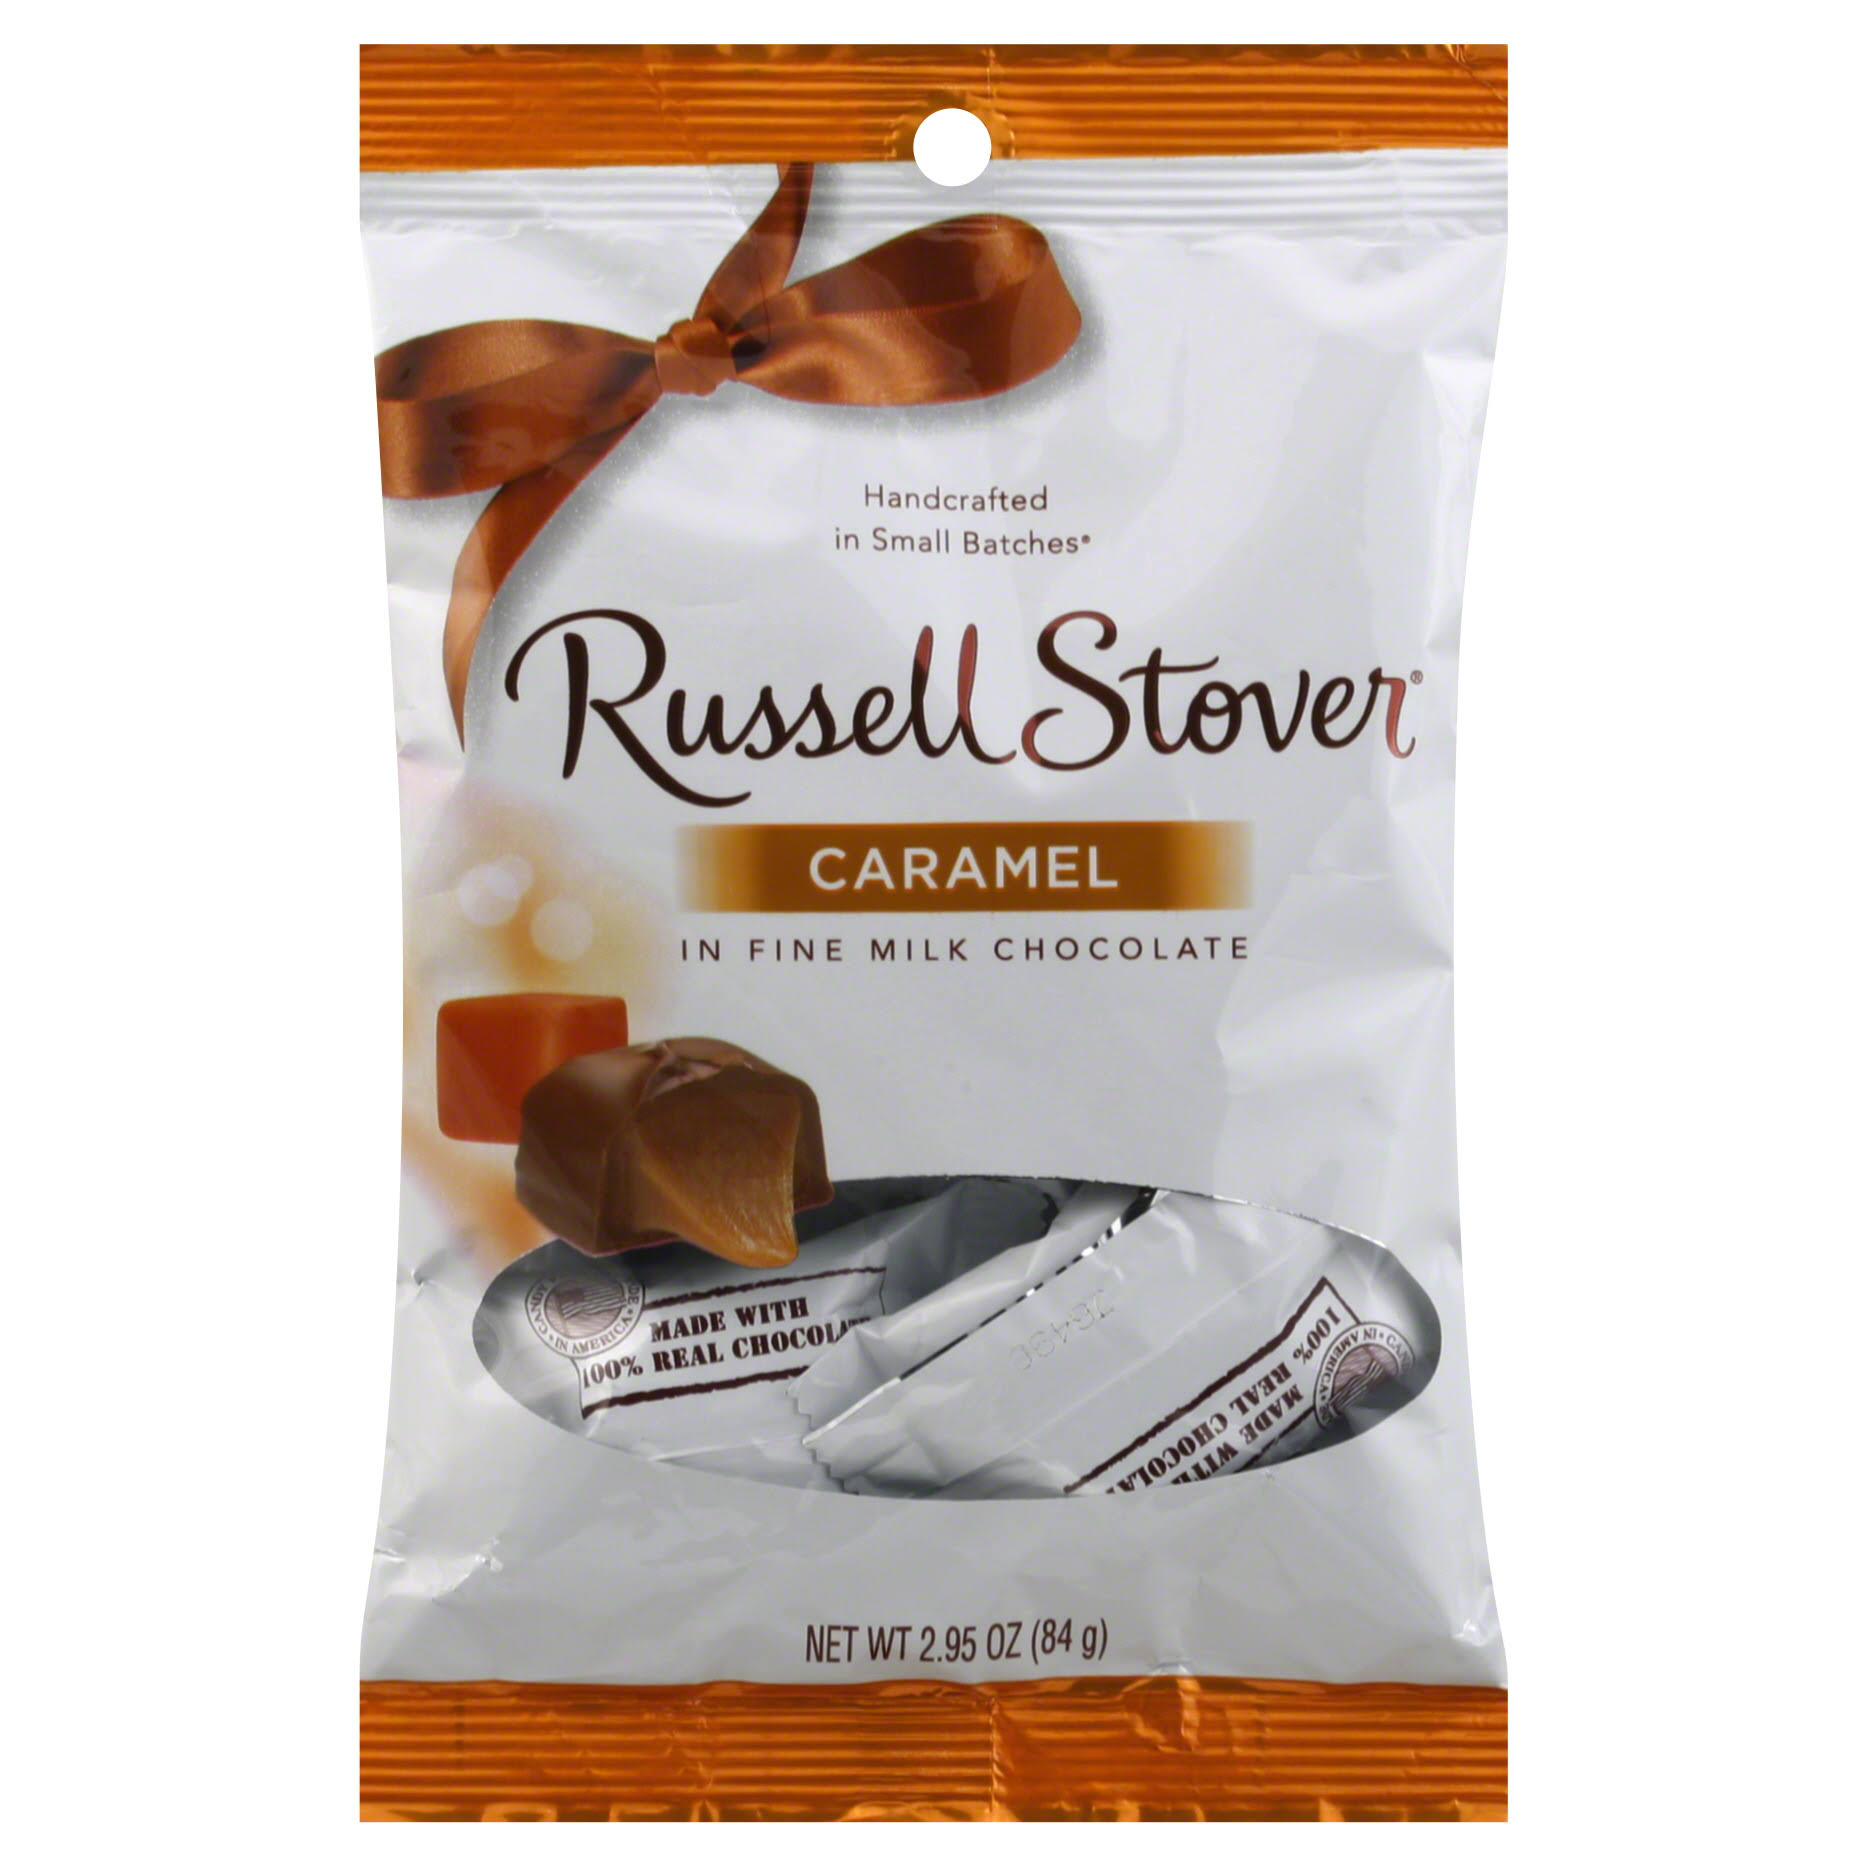 Russell Stover Caramel in Fine Milk Chocolate - 3 x 2.95oz